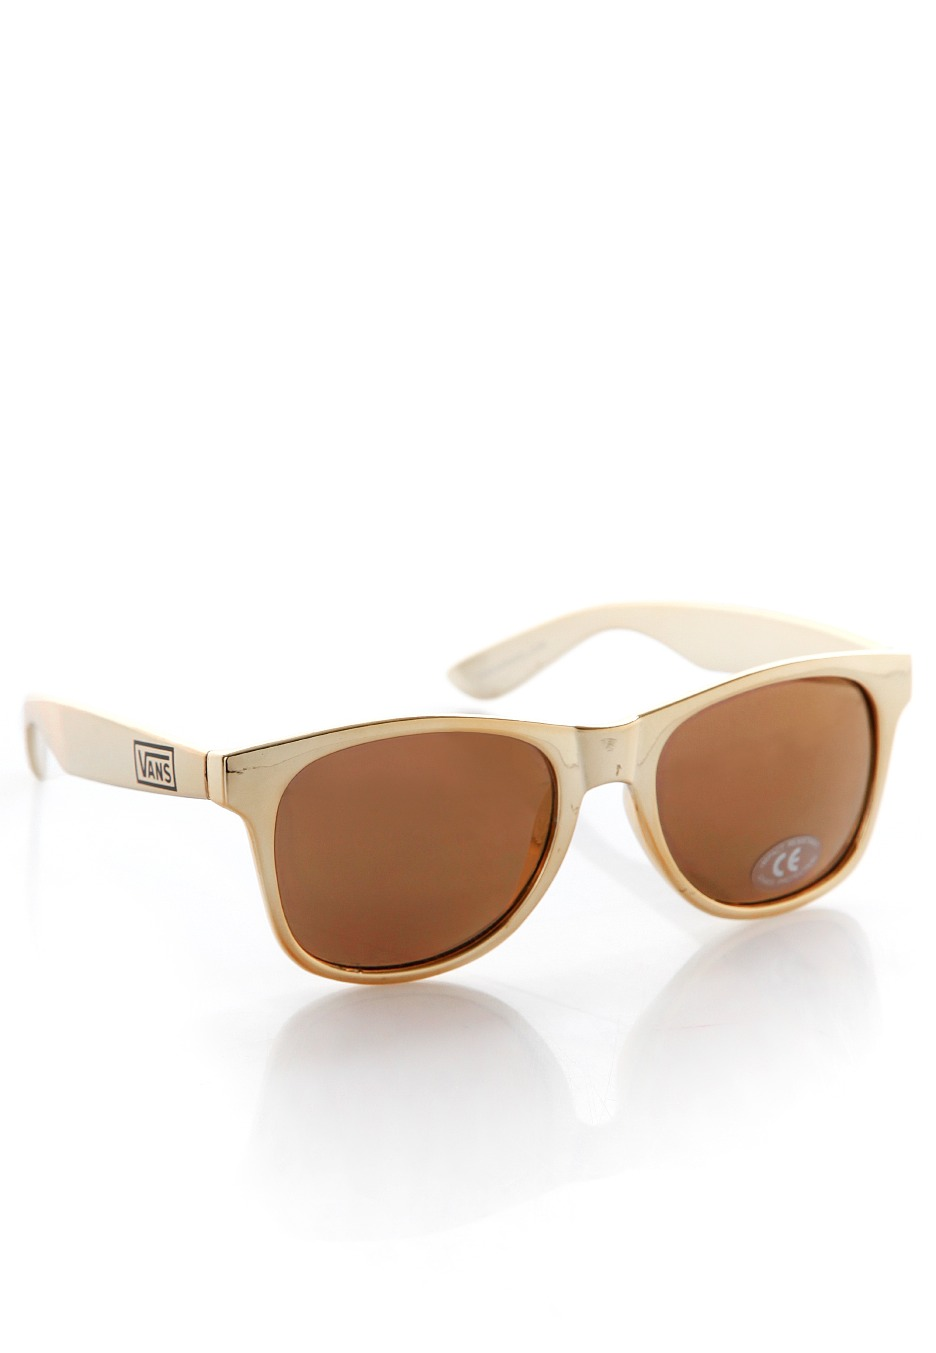 Vans - Spicoli 4 Shades Metallic Gold - Sunglasses - Impericon.com UK a318b48523